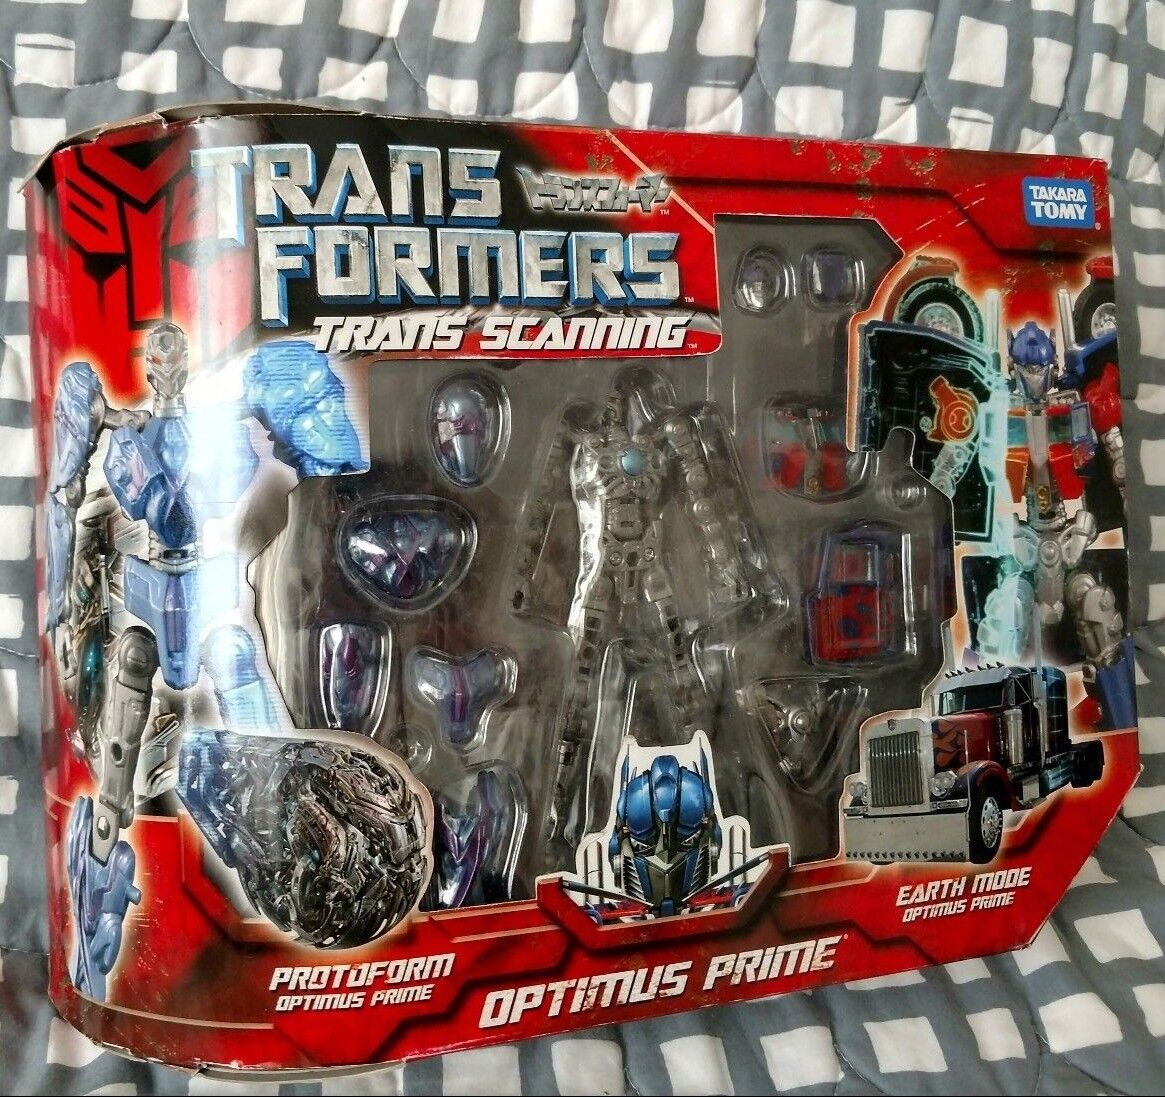 Takara TransFormers Protoform Trans Scanning Optimus Prime Movie MISB G1 aoe NEW